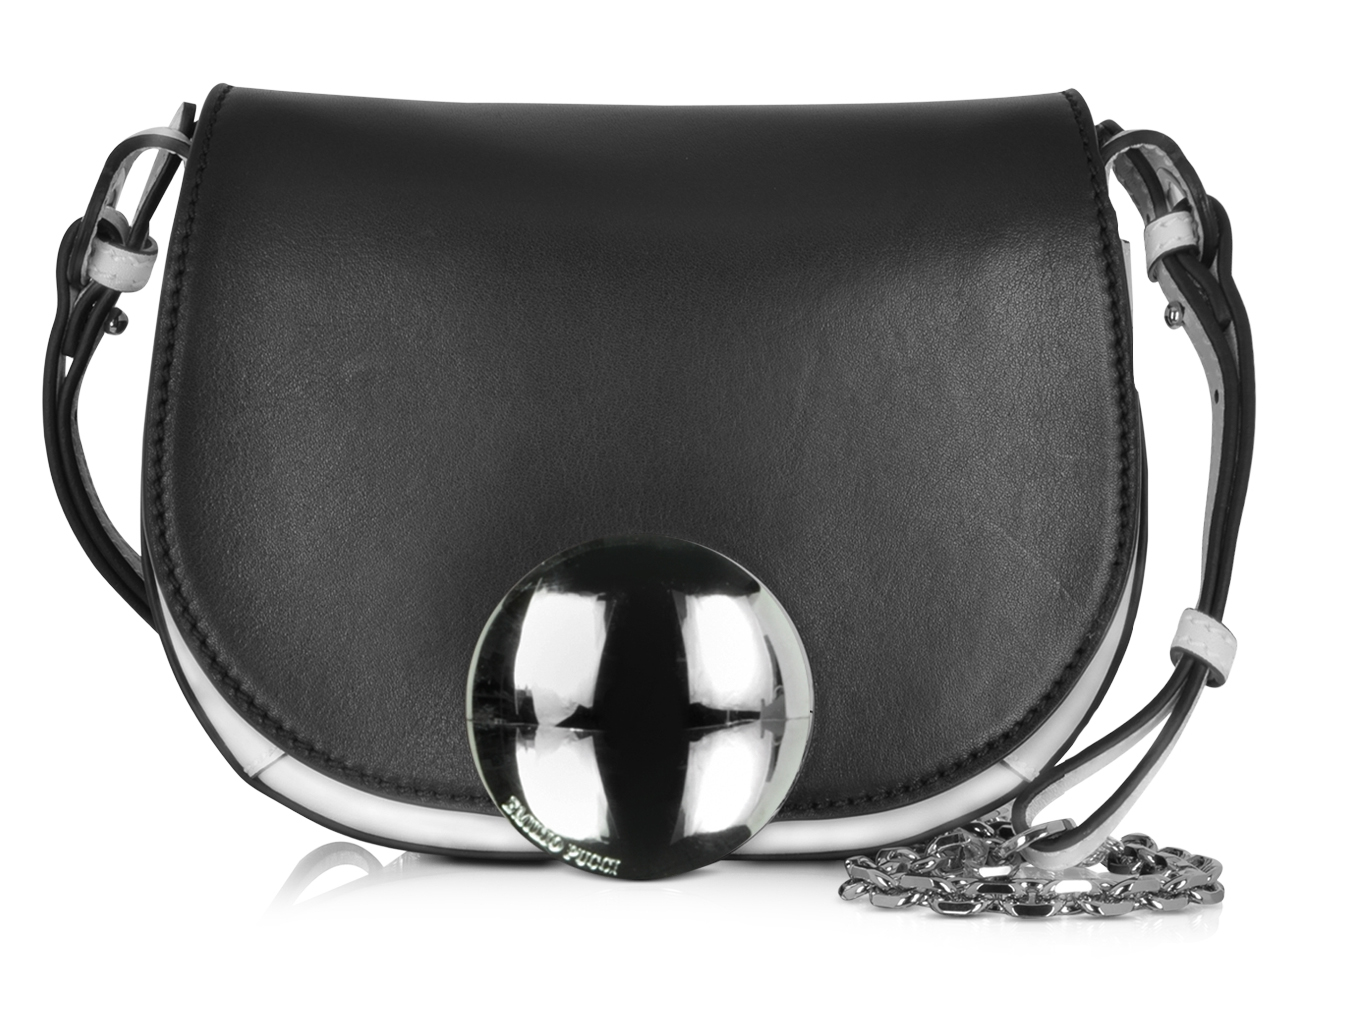 Emilio Pucci Mini Janis Black Ivory Leather Shoulder Bag - How to wear a V Neck Cashmere Sweater